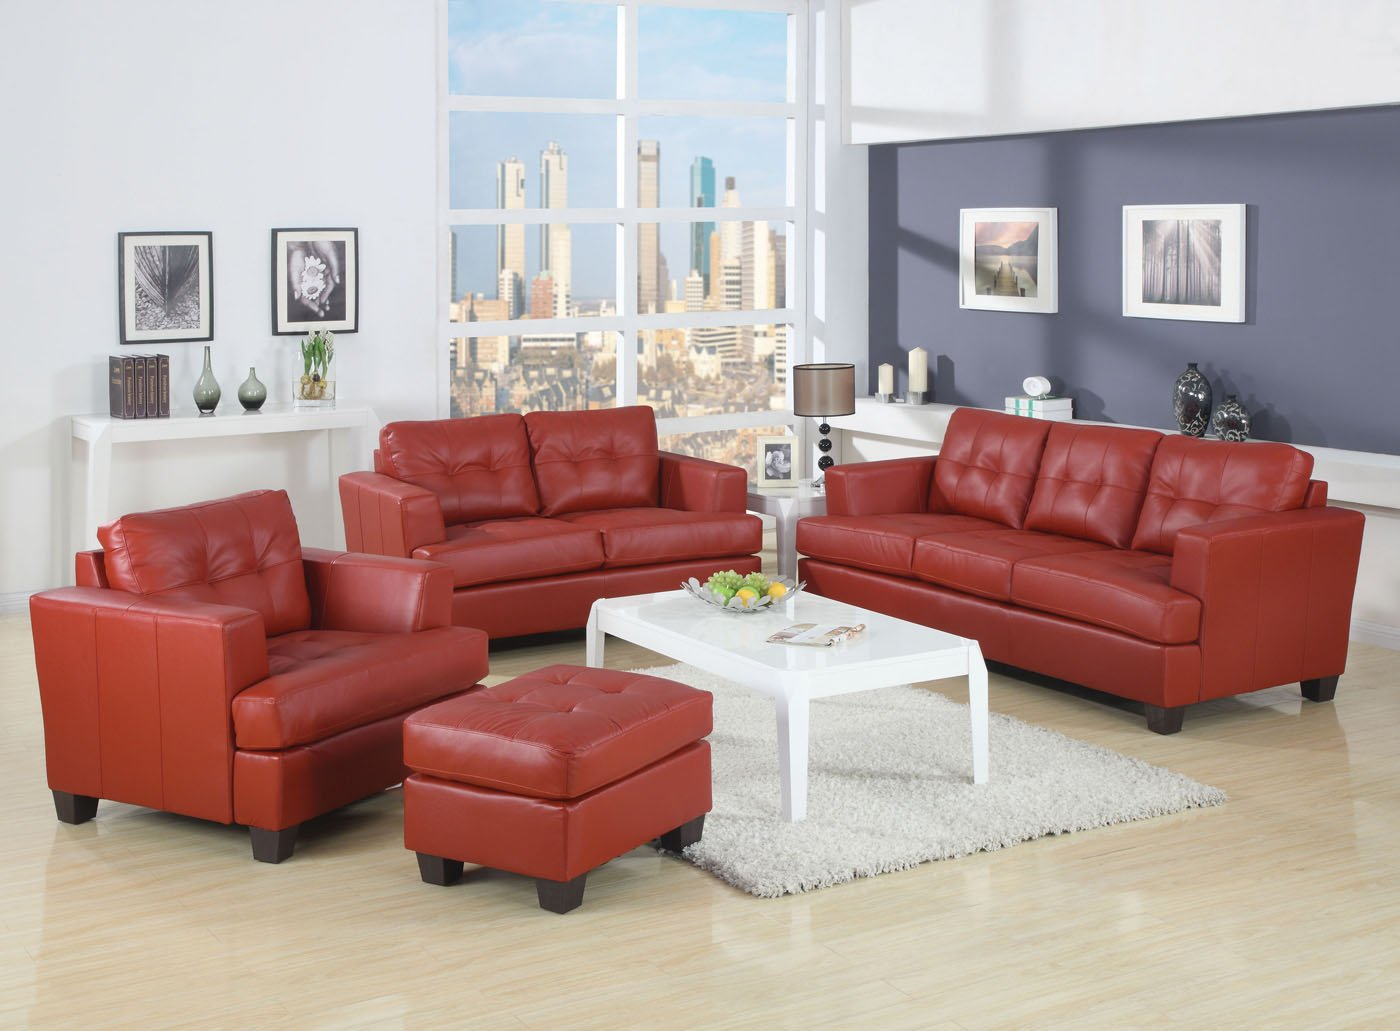 Acme 15101B Diamond Bonded Leather Loveseat with Wood Leg - Red